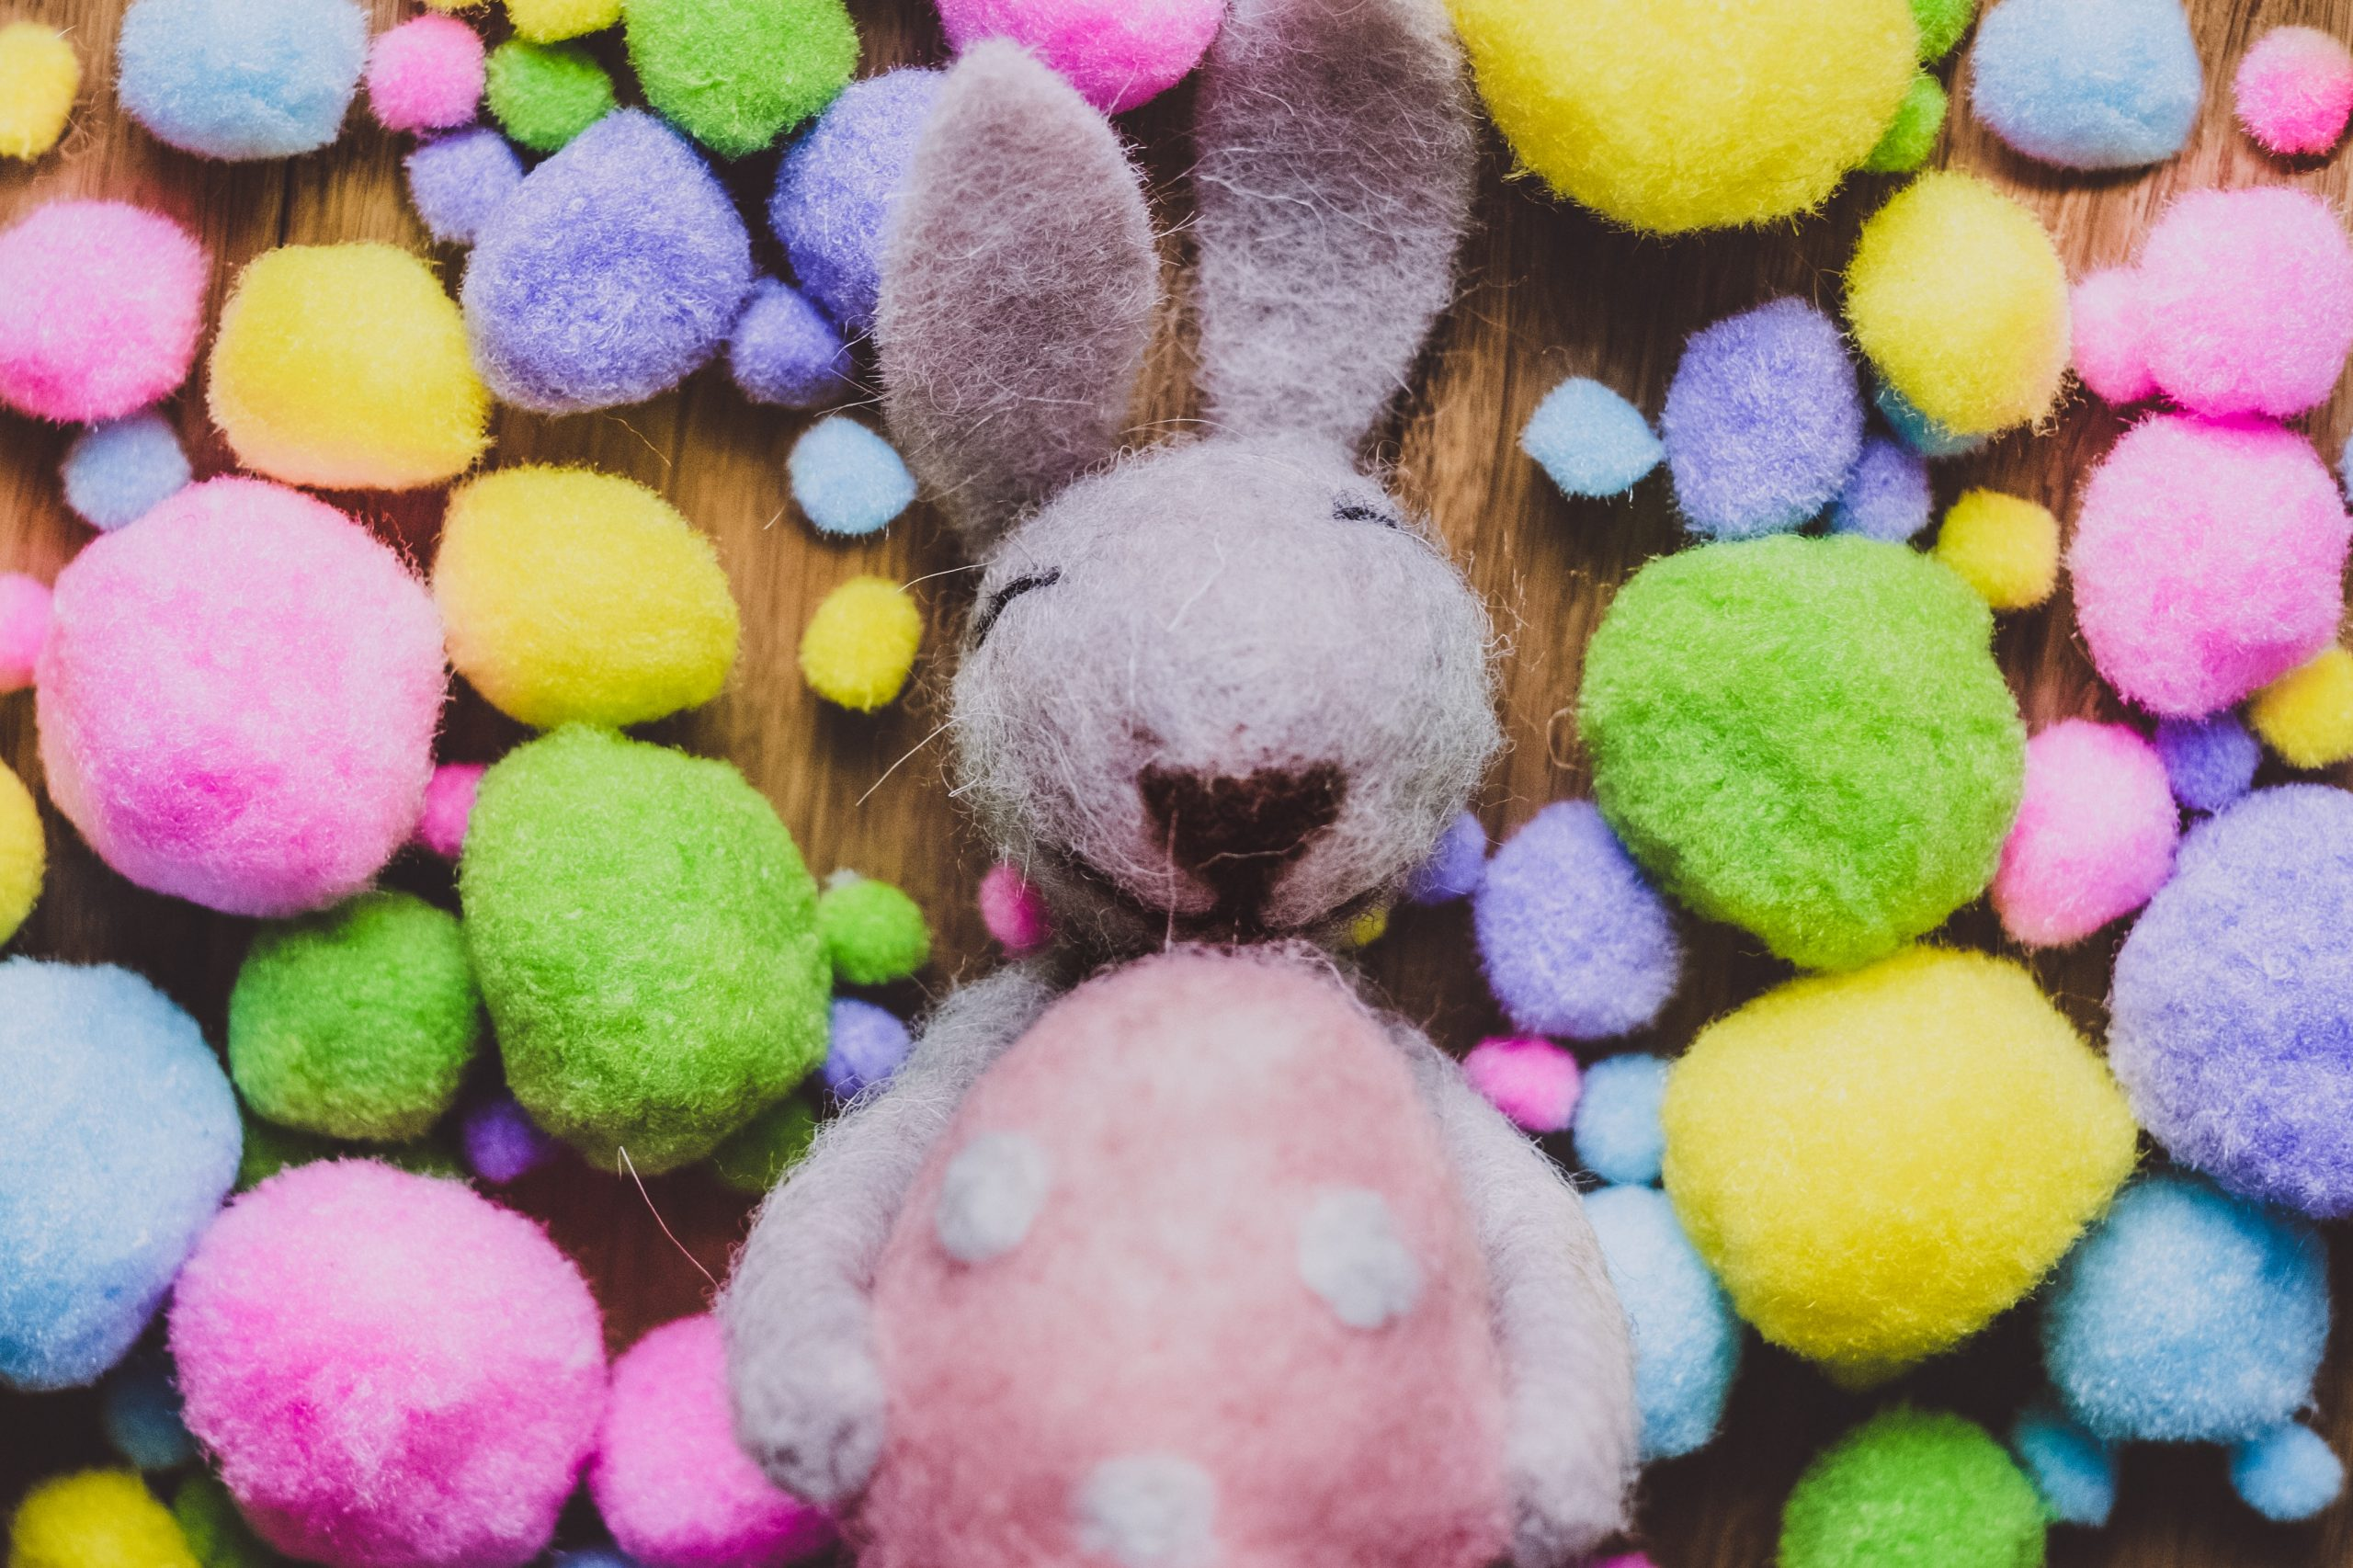 A felt made Easter bunny on a table surrounded by a number of pom poms looking like Easter eggs